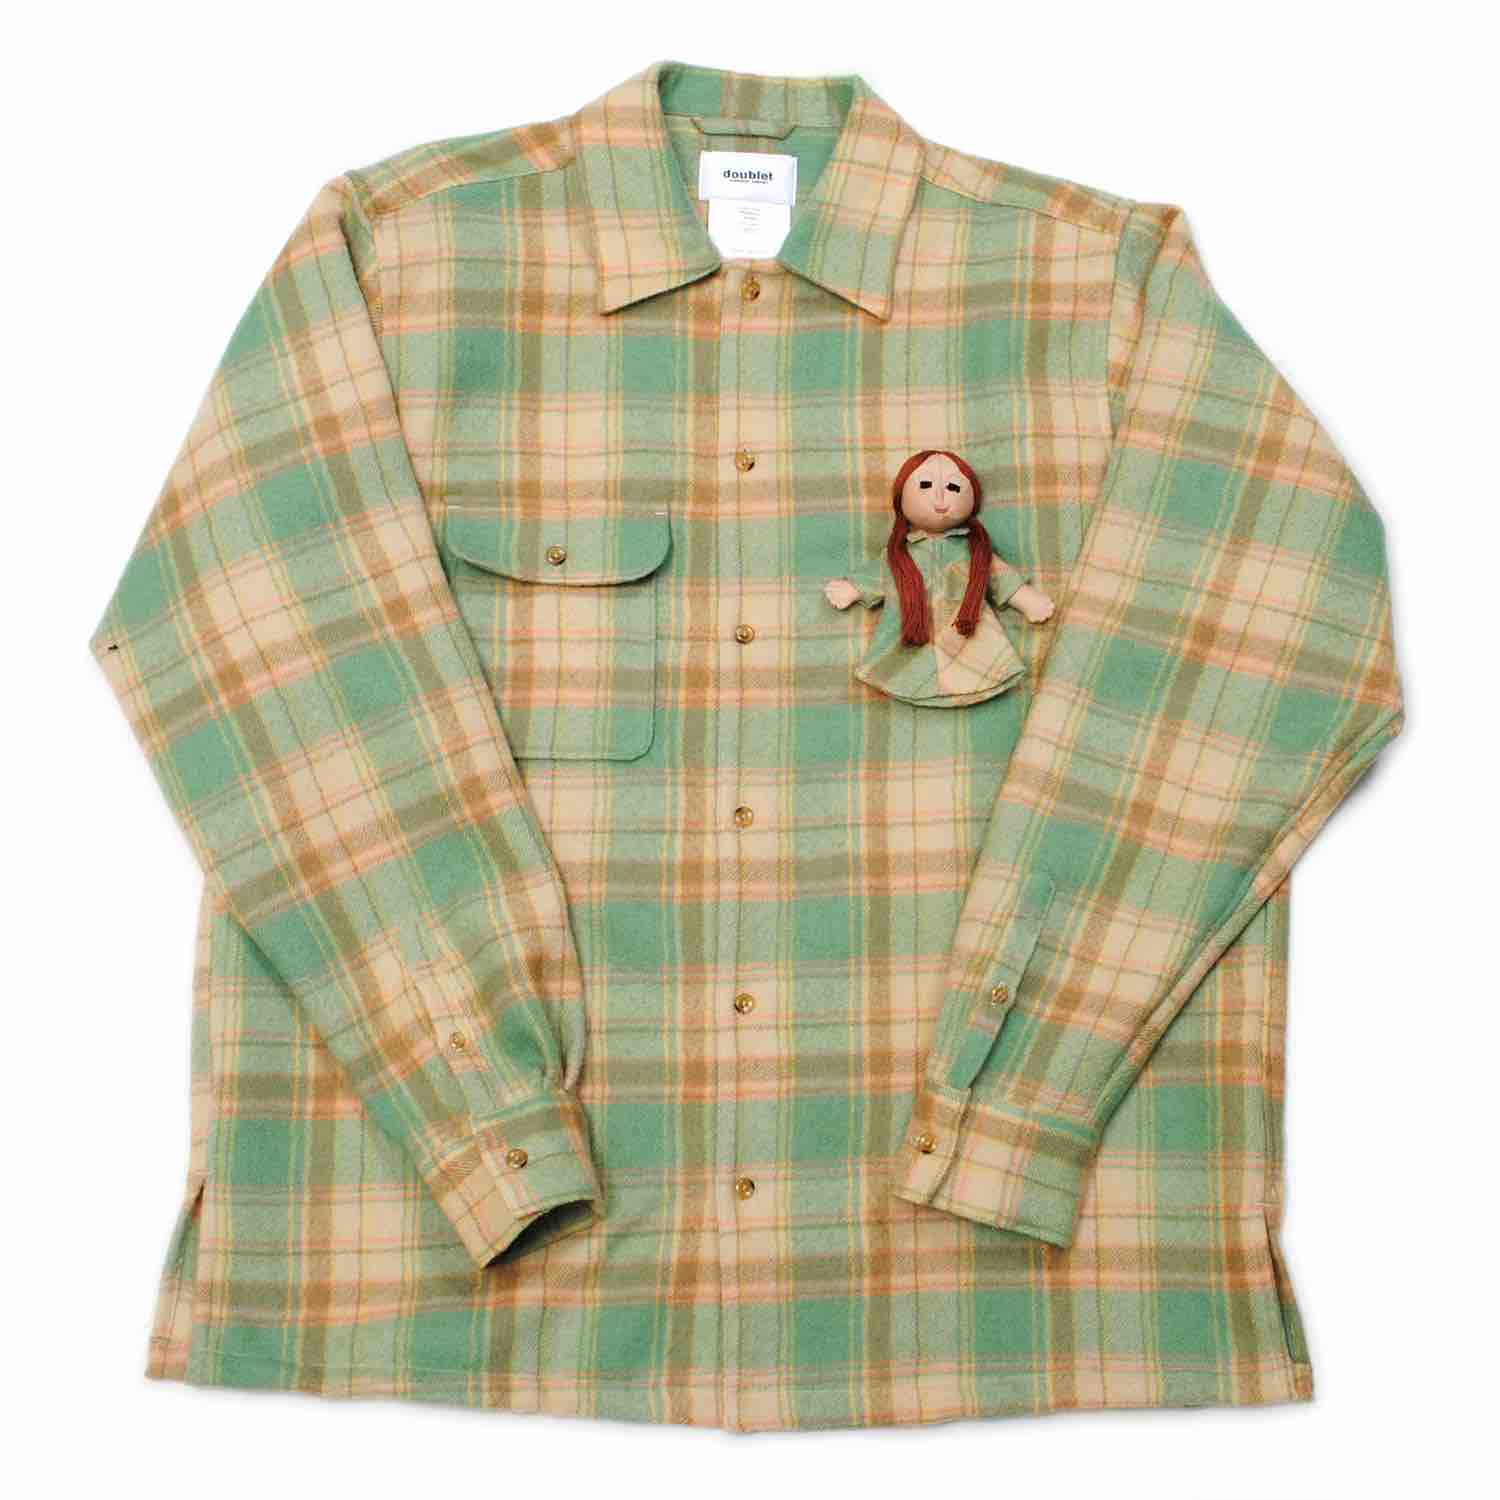 Mint Check Shirt With My Doll